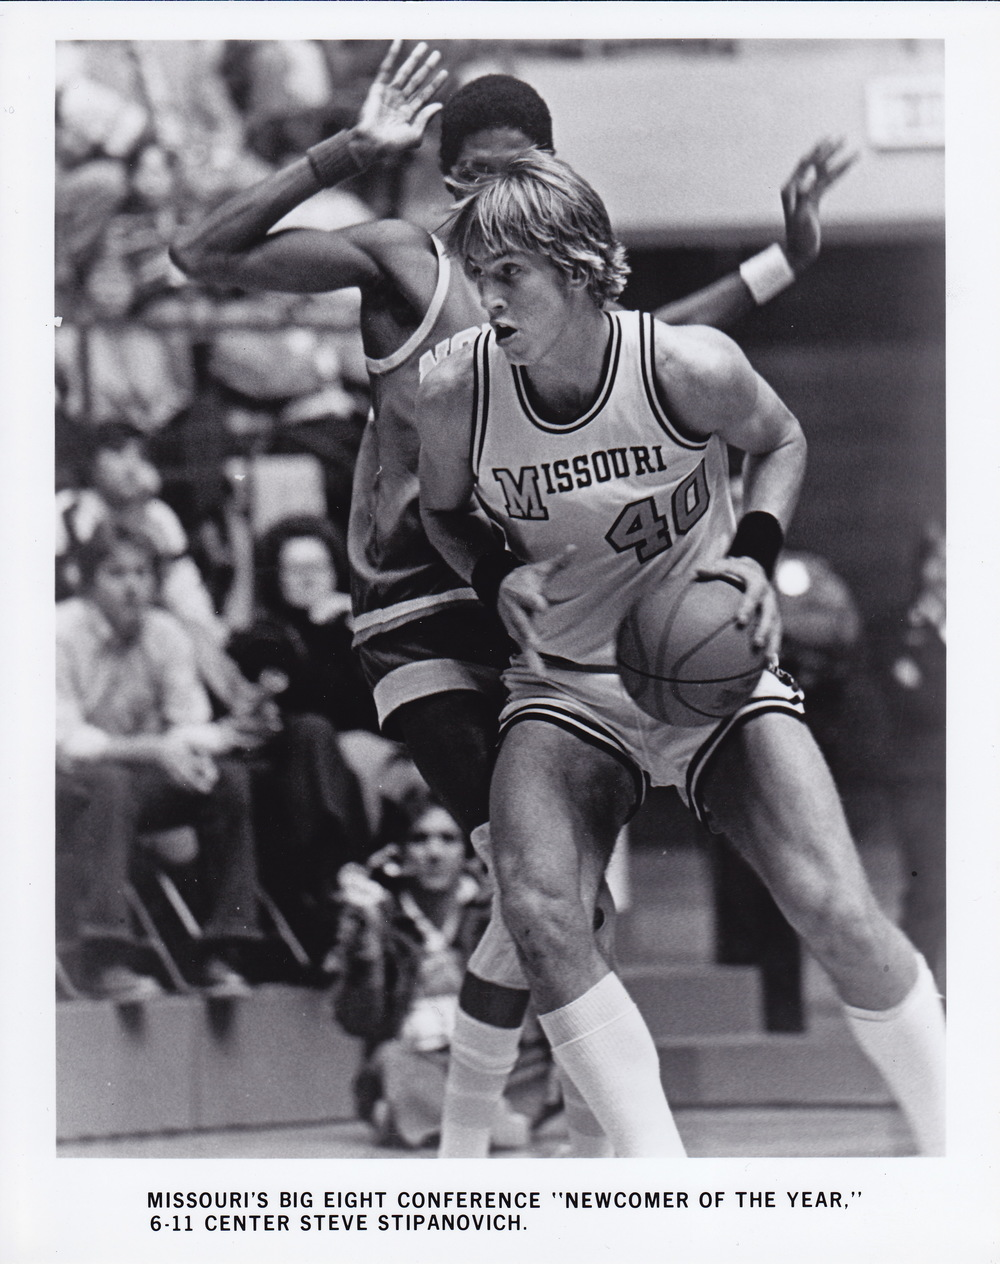 Steve Stipanovich, University of Missouri all-time leading scorer